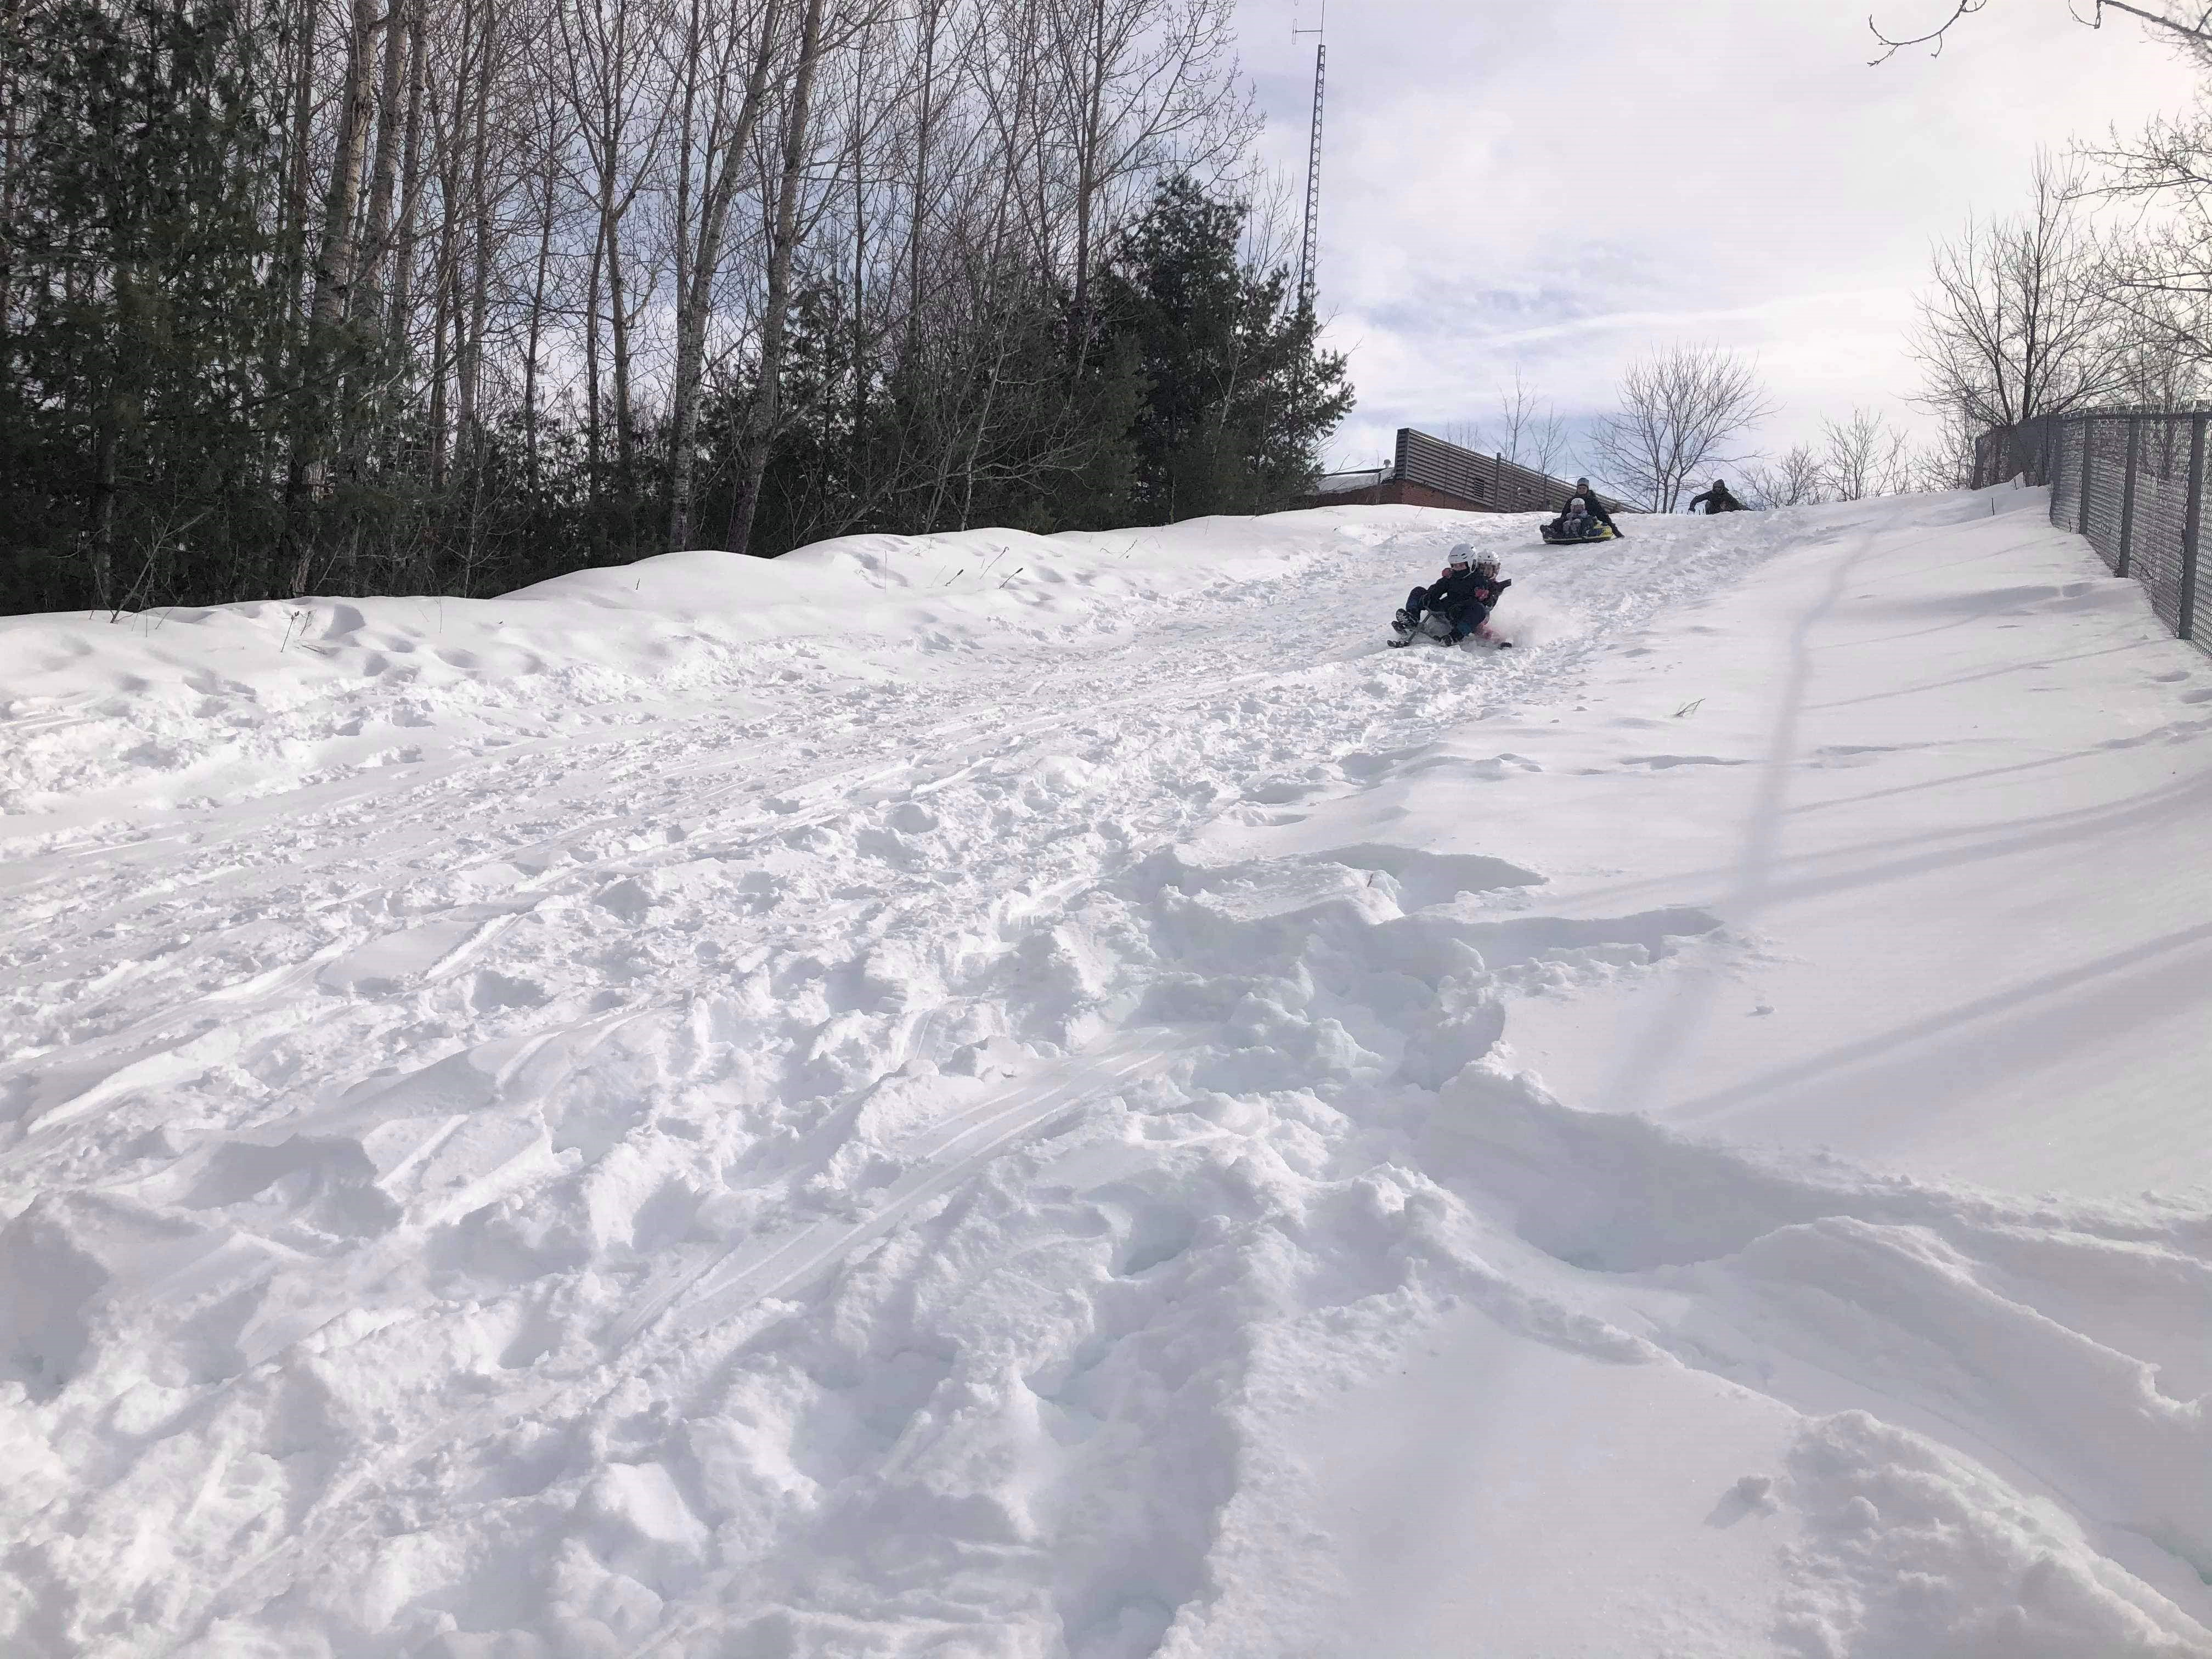 Image of 2 sledders coming down the snowy hill